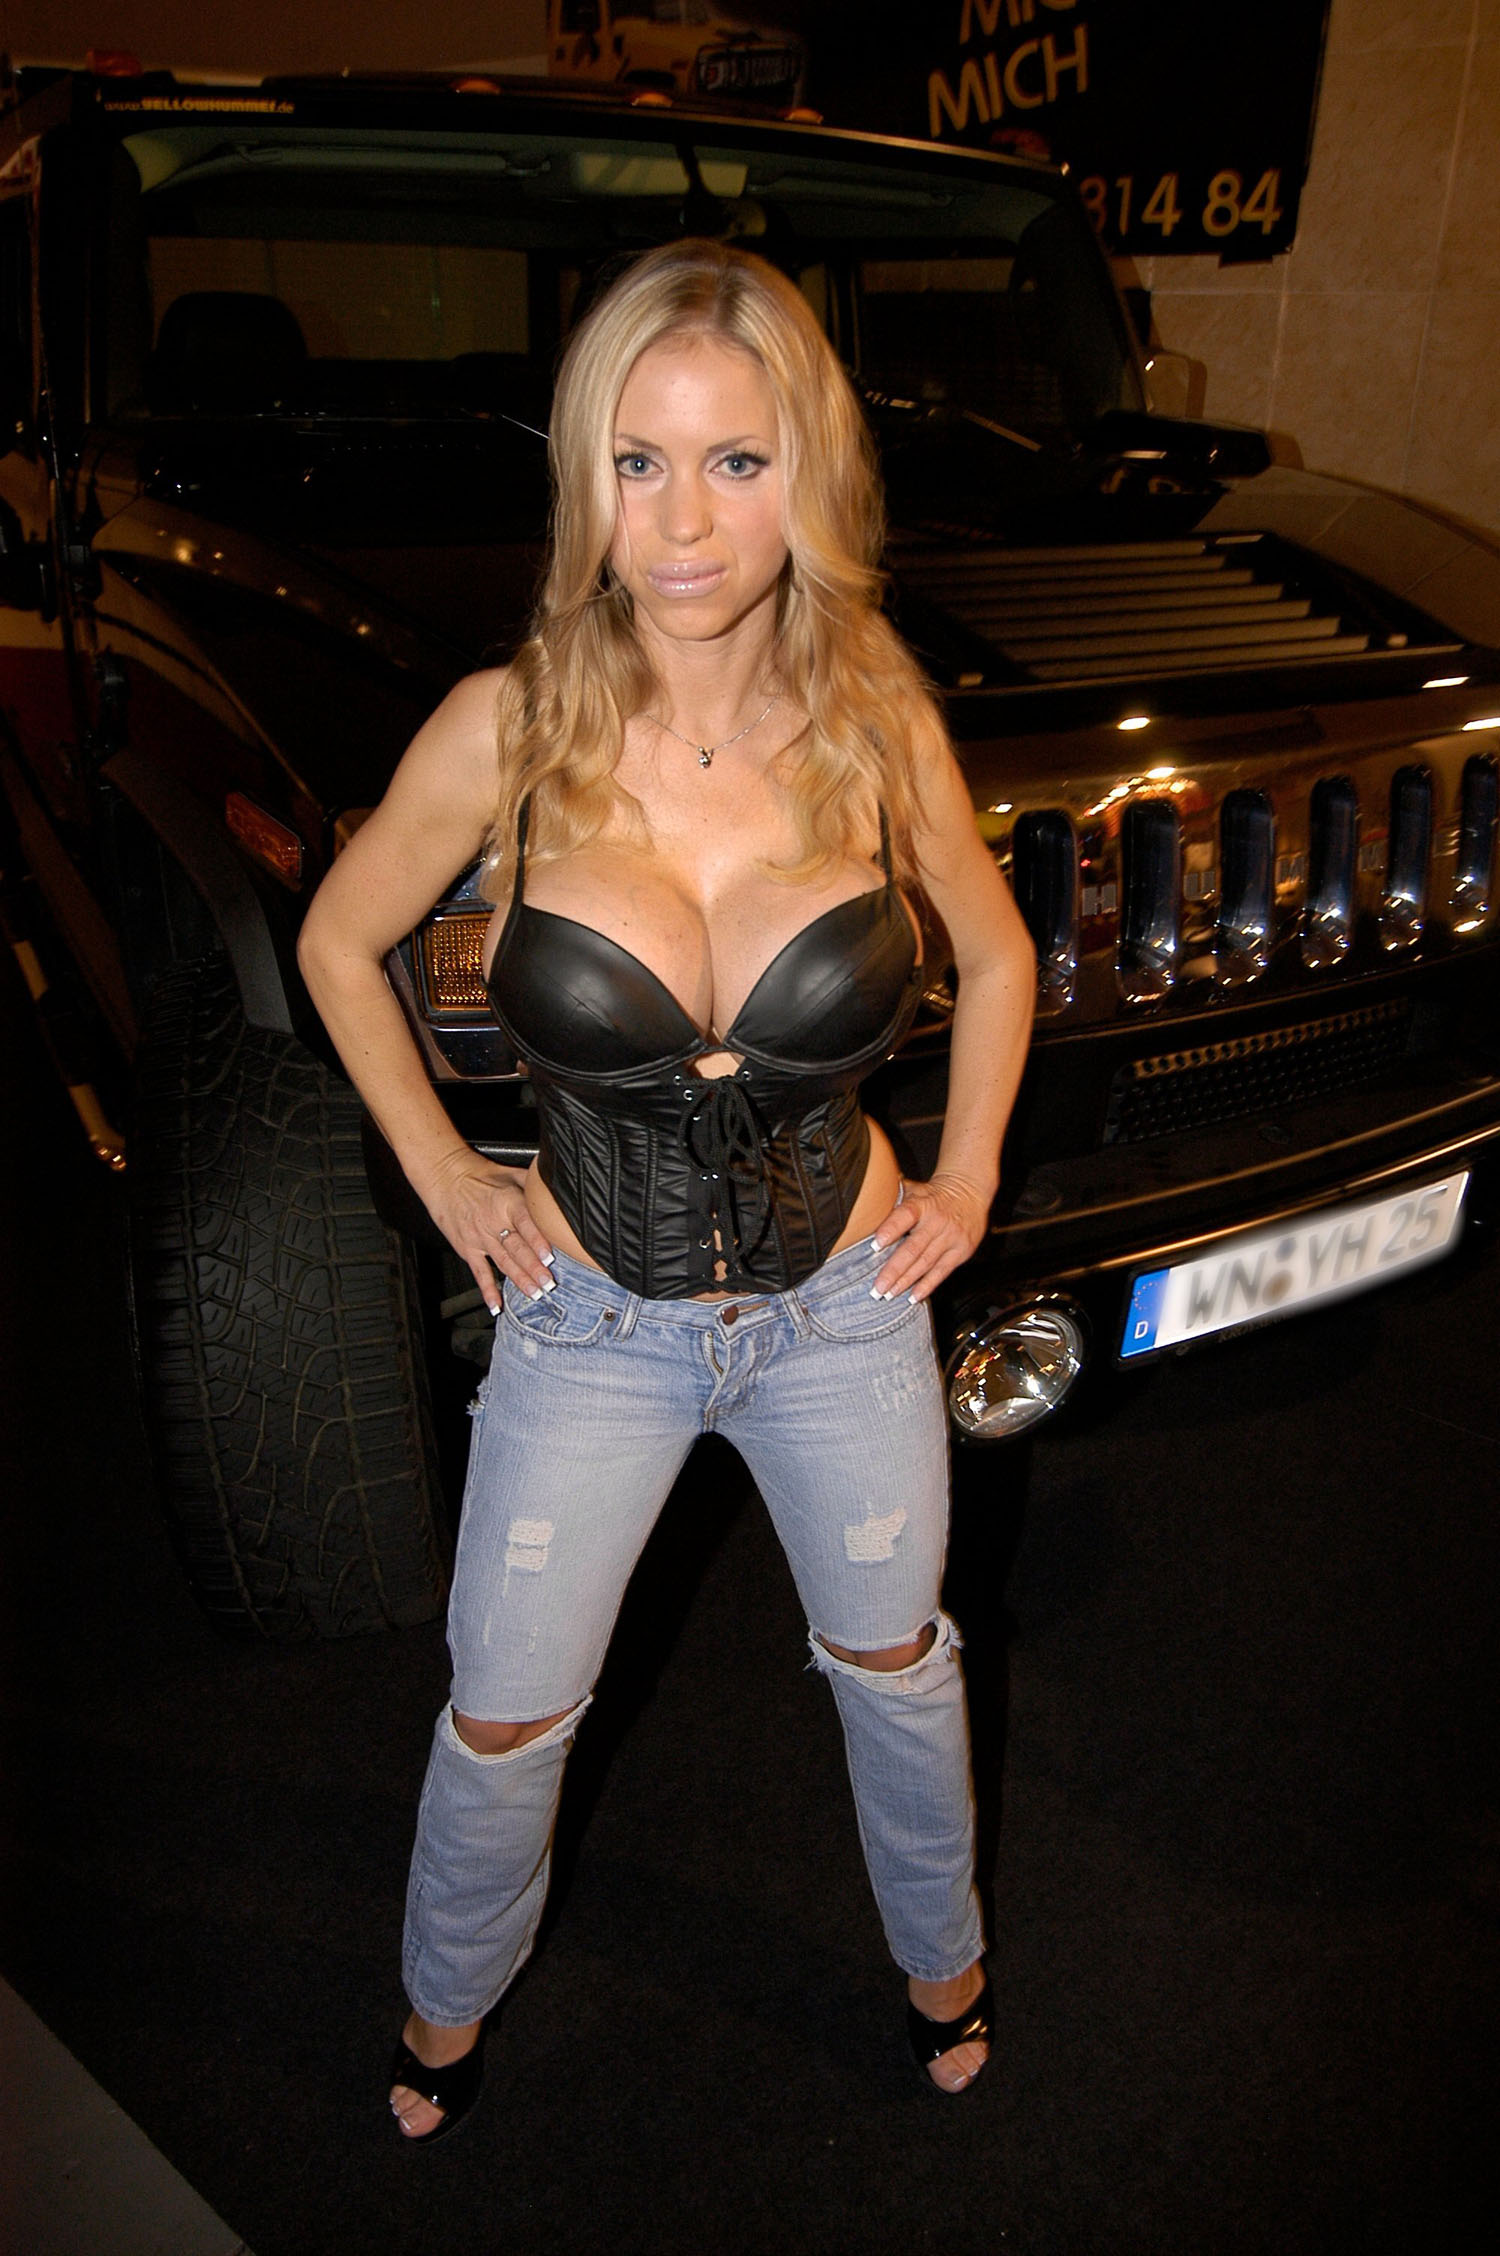 Annina Ucatis on erotic and porn pictures and movies. Free